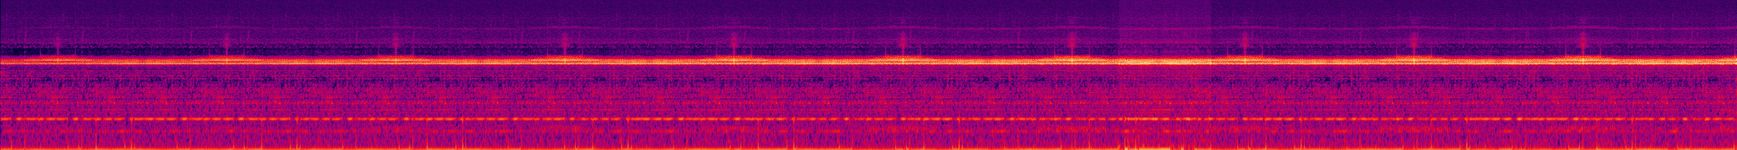 The Naked Sun - 14. Filler - Spectrogram.jpg